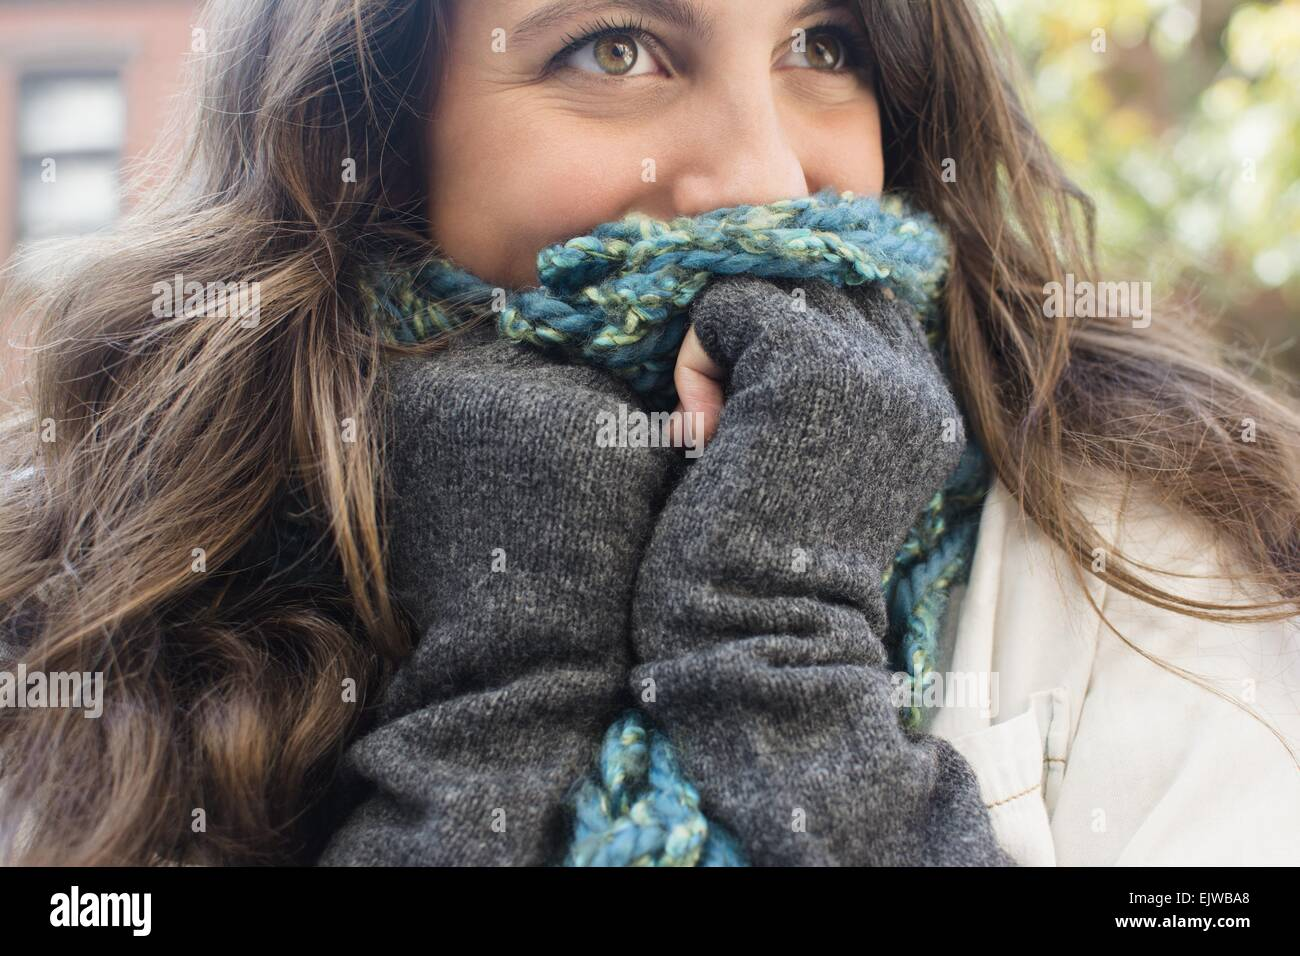 USA, New York State, New York City, Brooklyn, Young woman hiding her face behind scarf - Stock Image